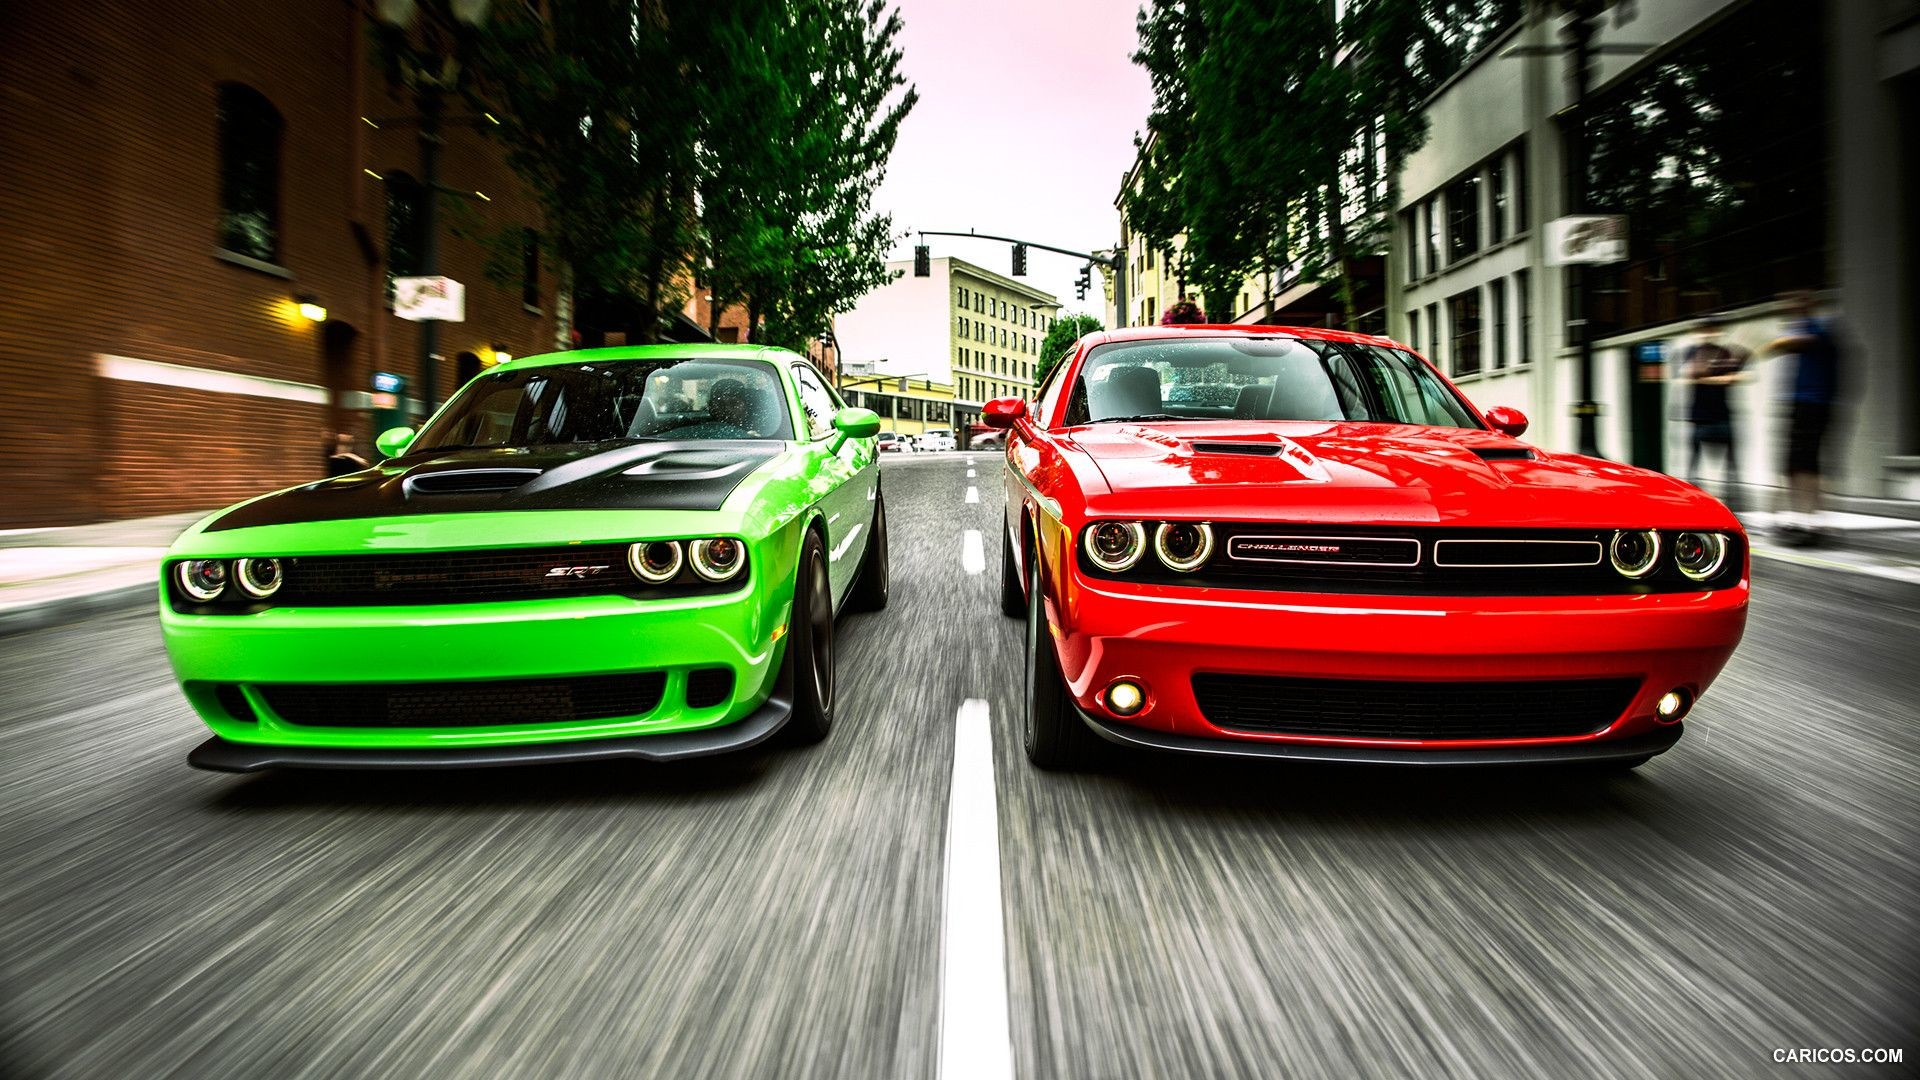 Res: 1920x1080, dodge challenger 2015 hellcat wallpaper - Google Search